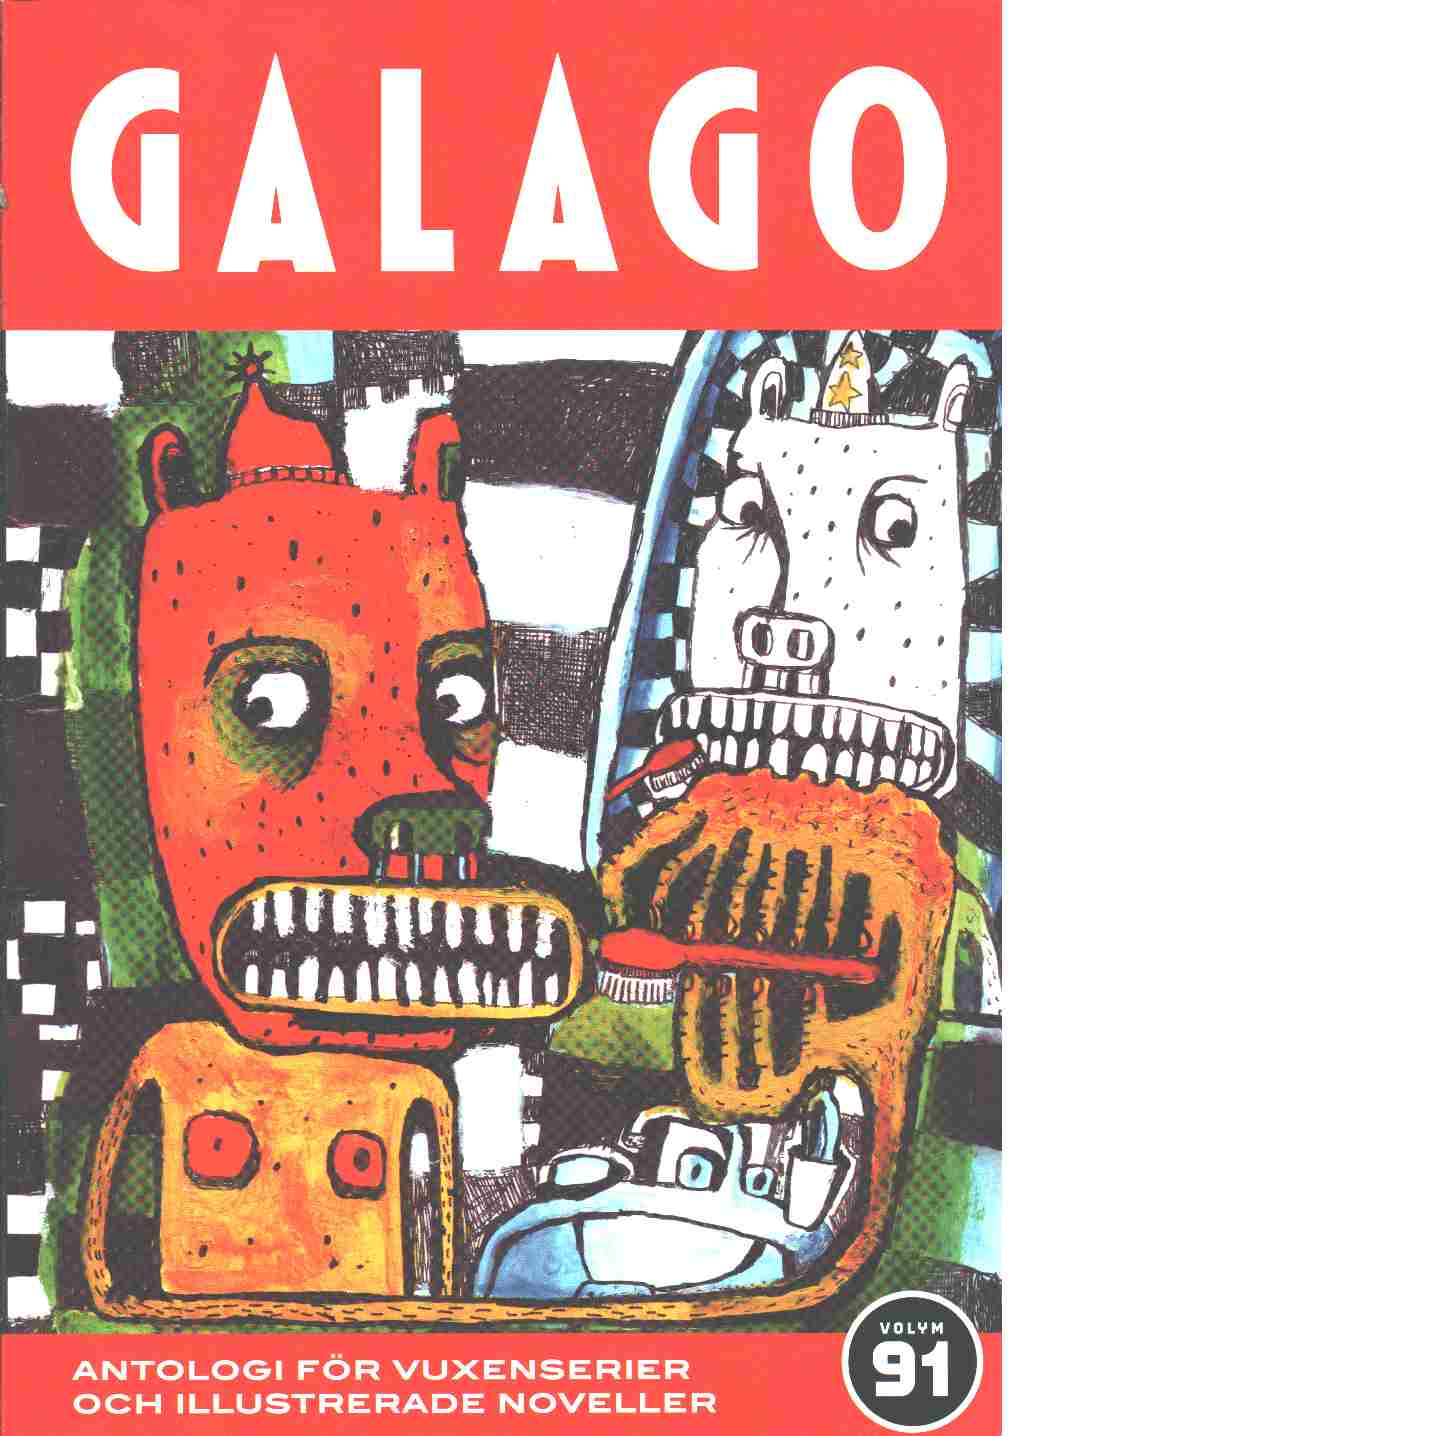 Galago volym 91 - Red.